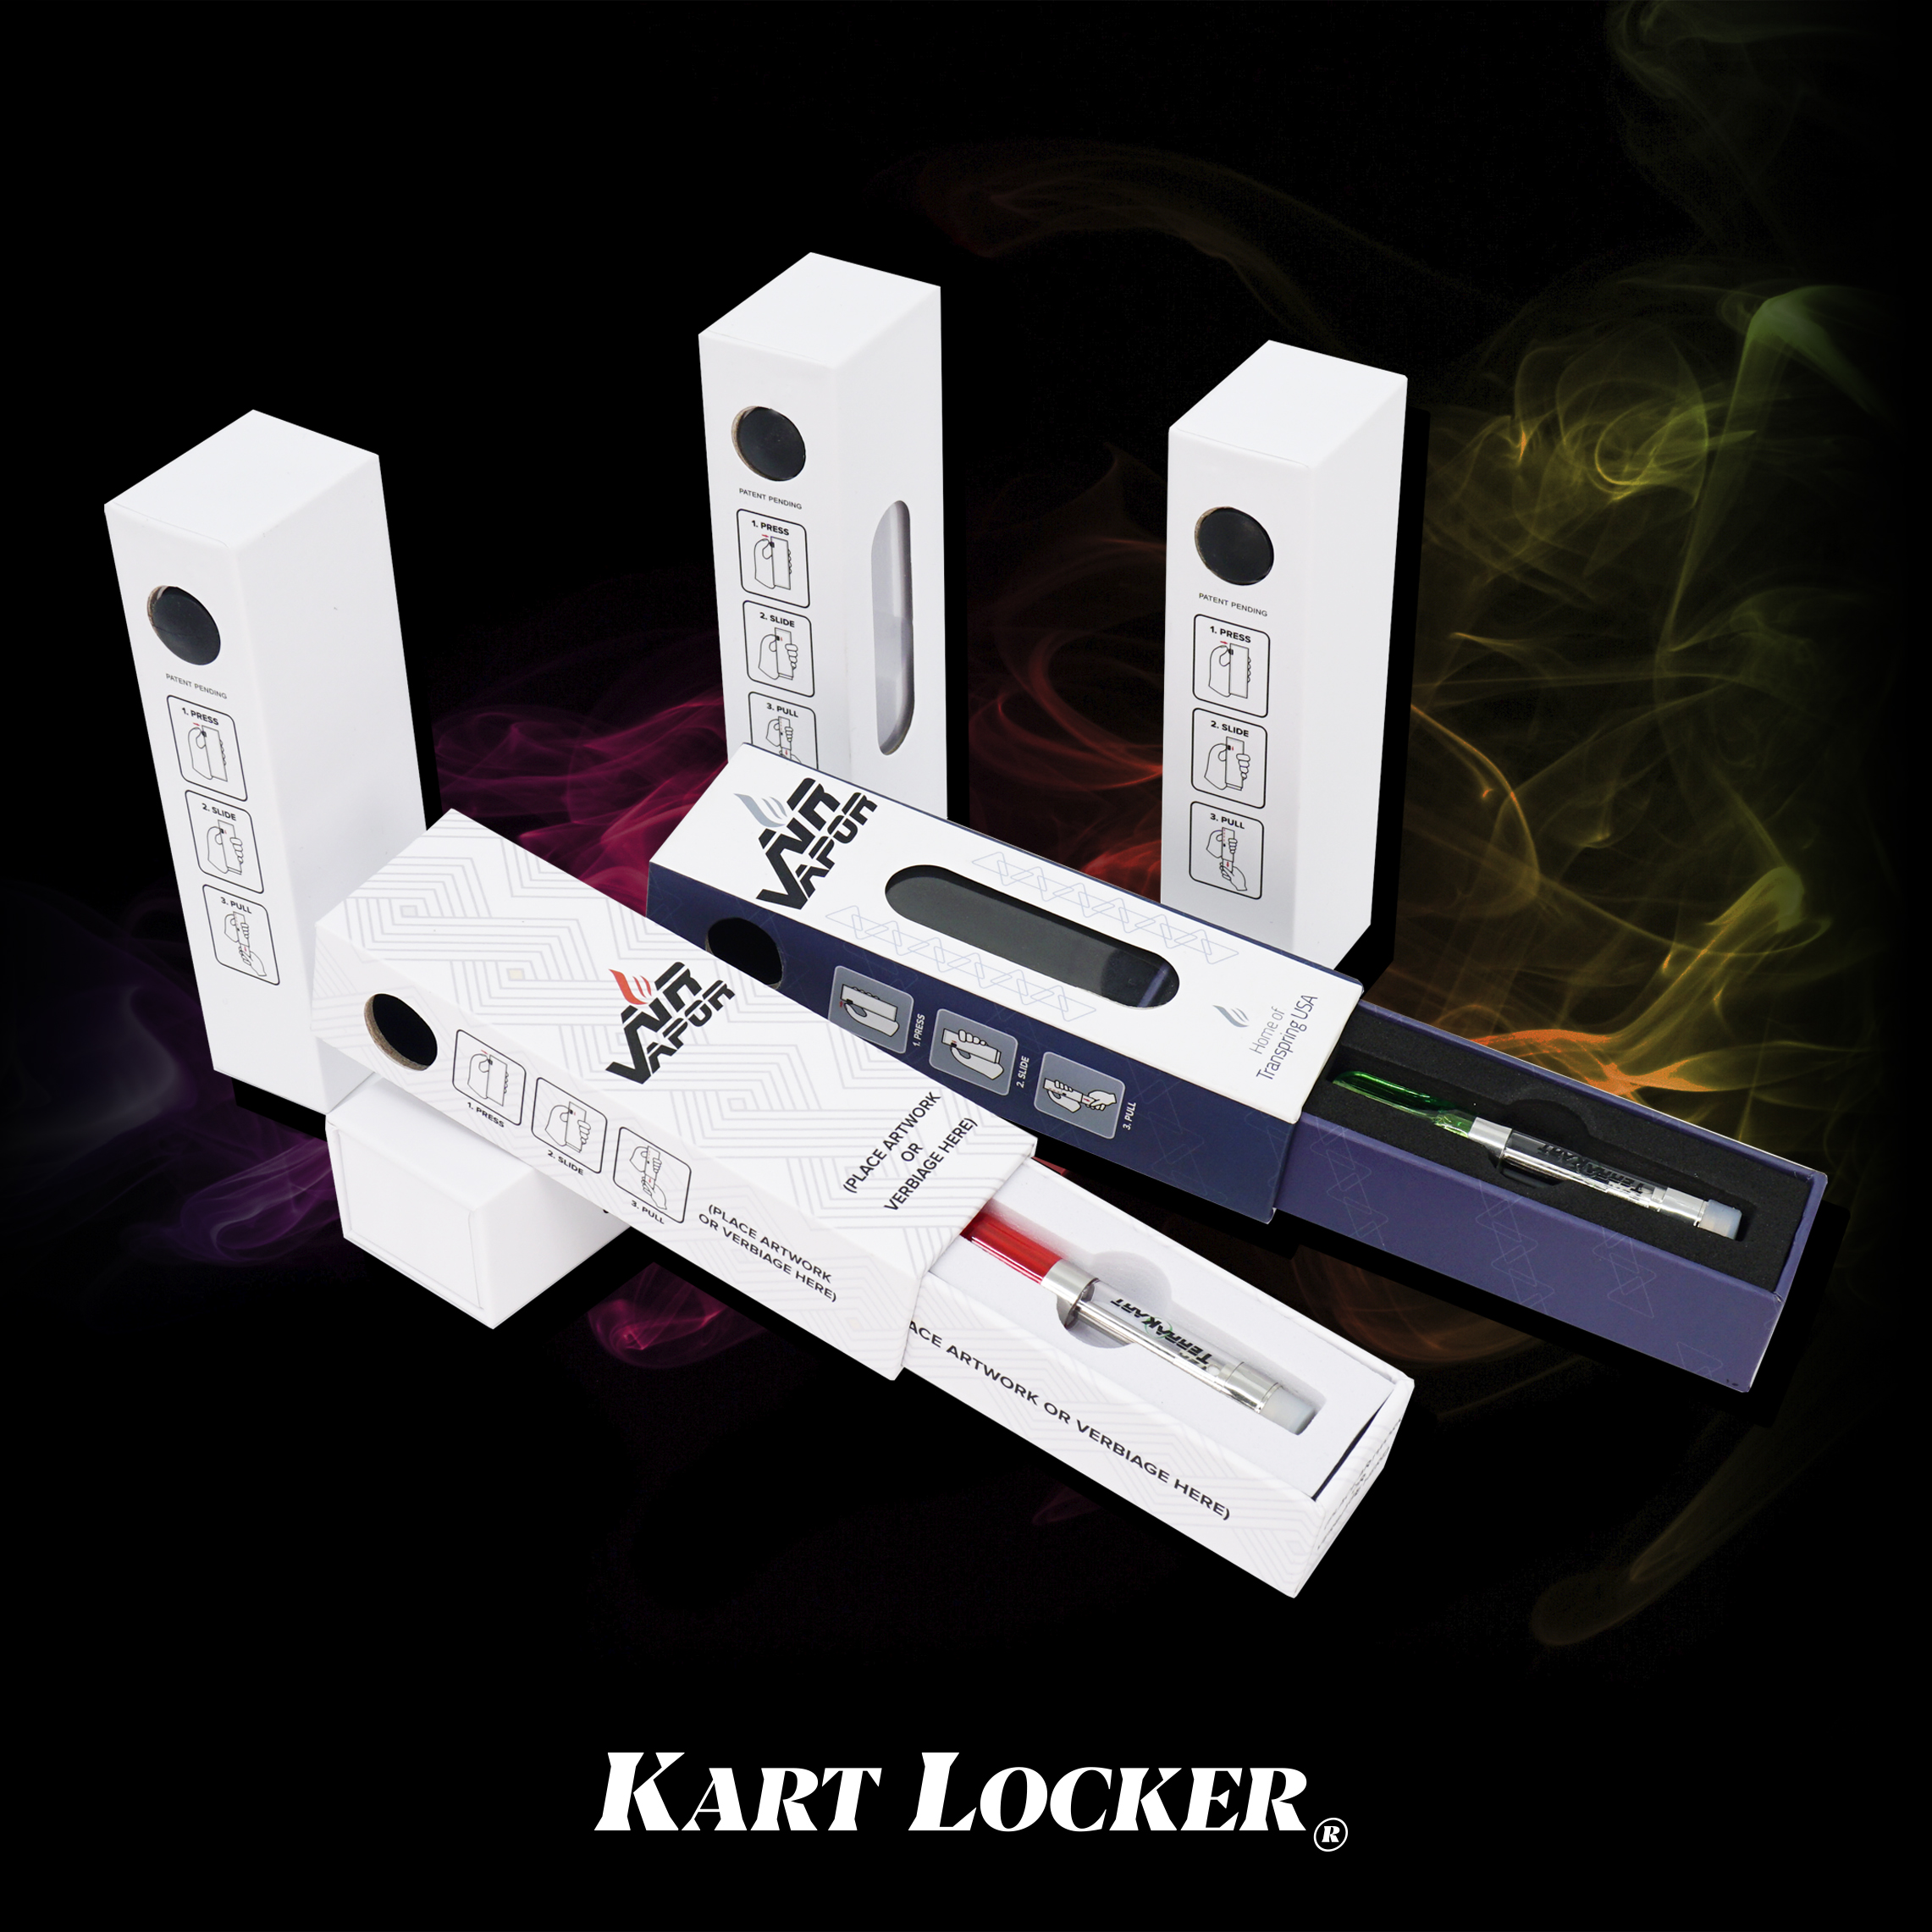 KART LOCKER - Certified Child Resistant Vape Cartridge PackagingFits 0.5mL & 1.0mL Cartridges Works Great with tk carts!